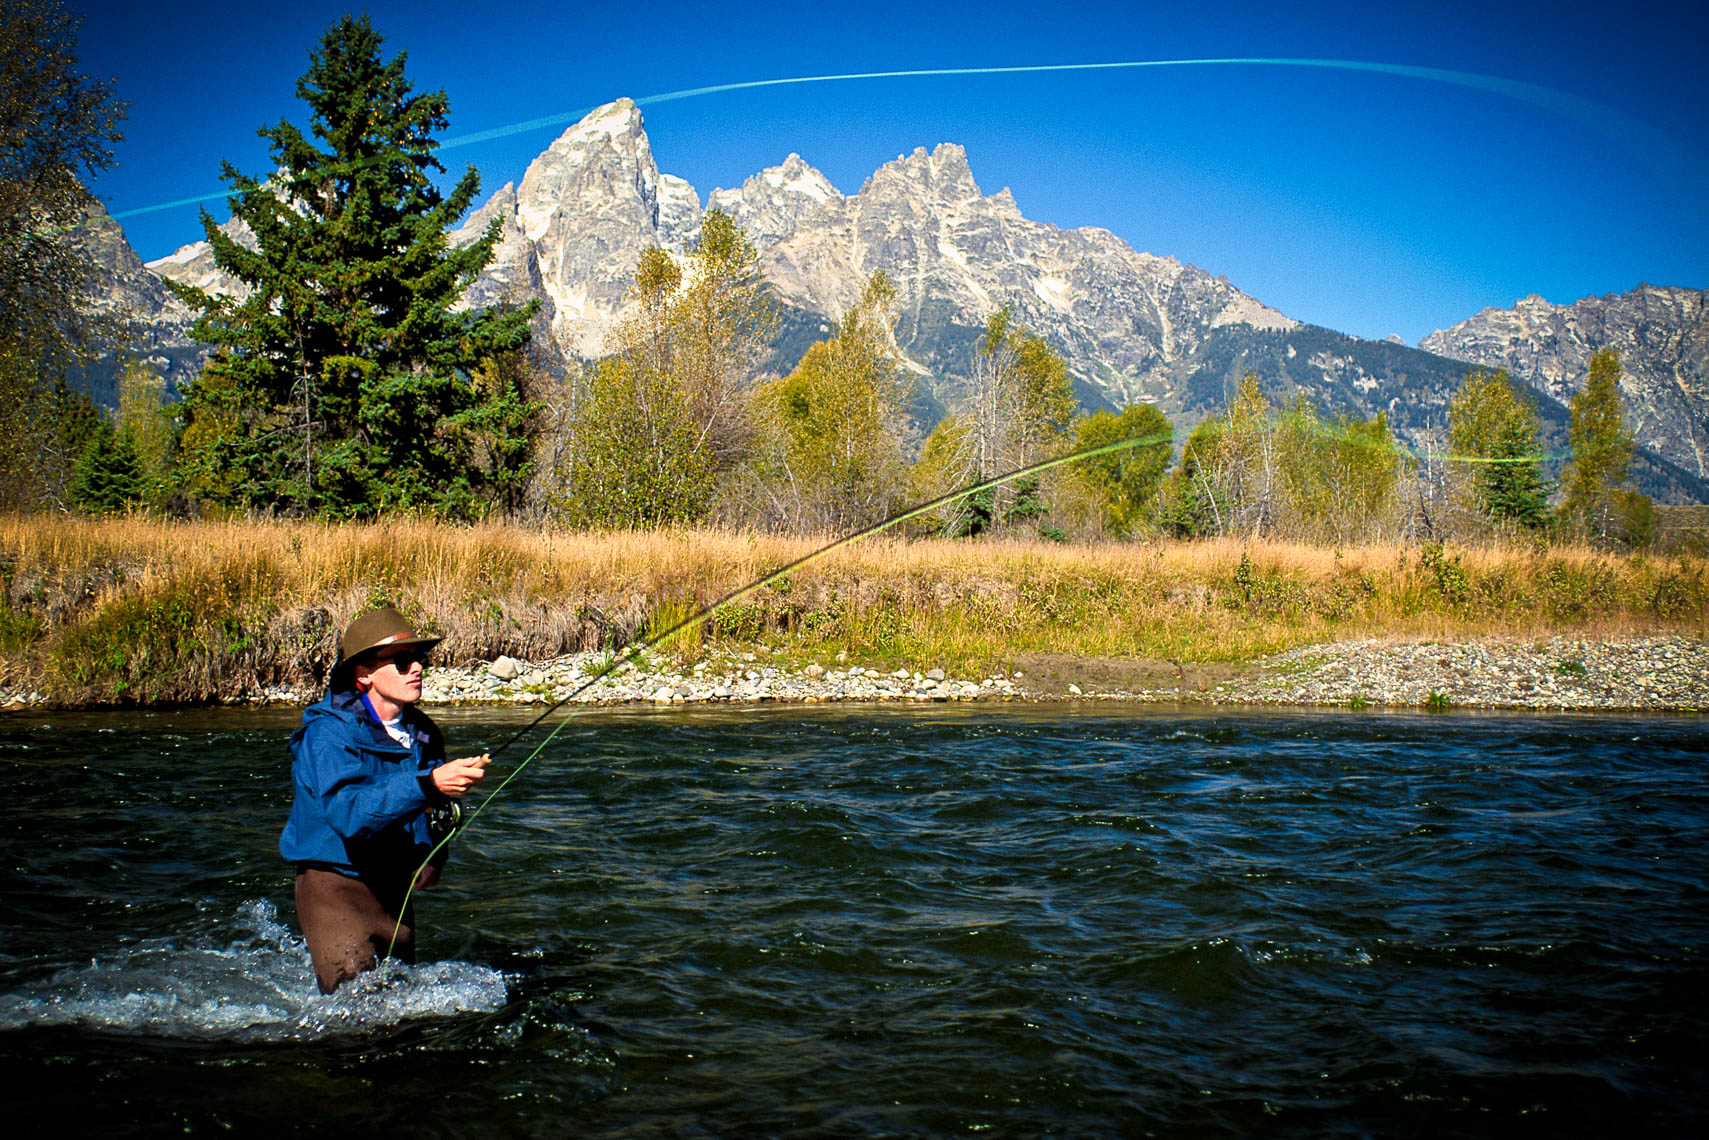 Los Angeles Photographer | Dana Hursey Photography | Hospitality Photography | Fly Fishing